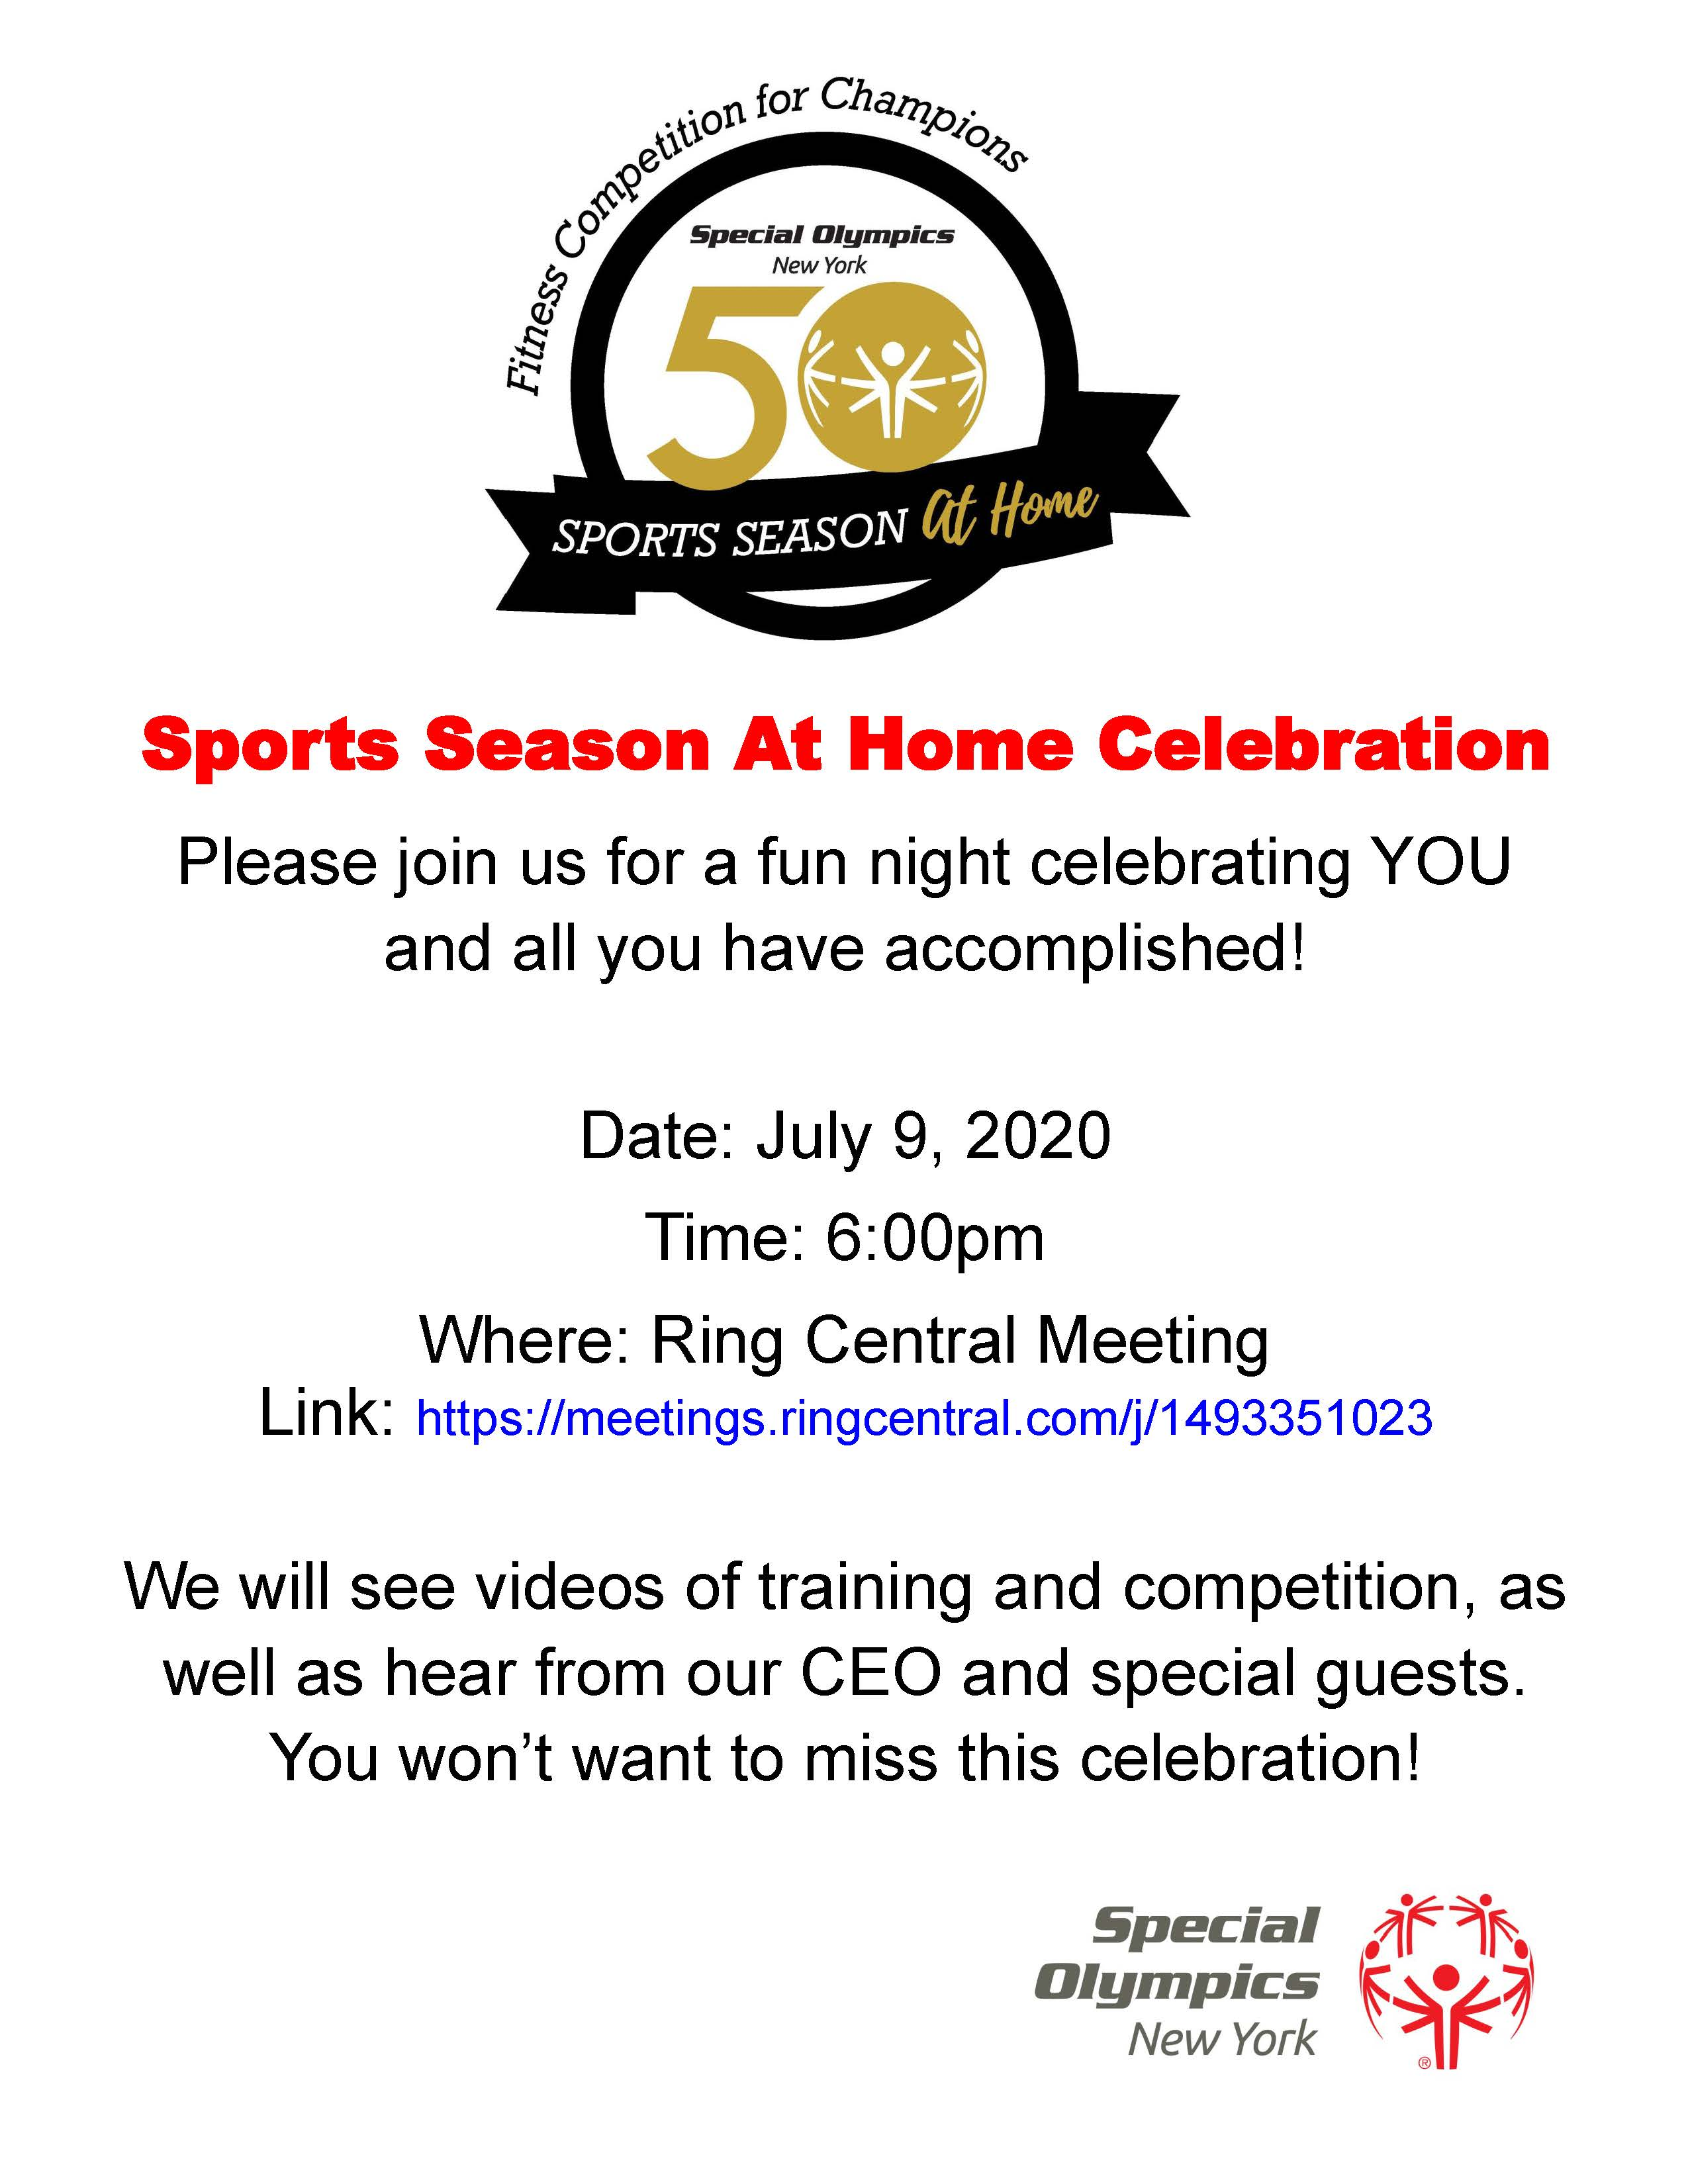 Special Olympics Season at Home Celebration Flyer